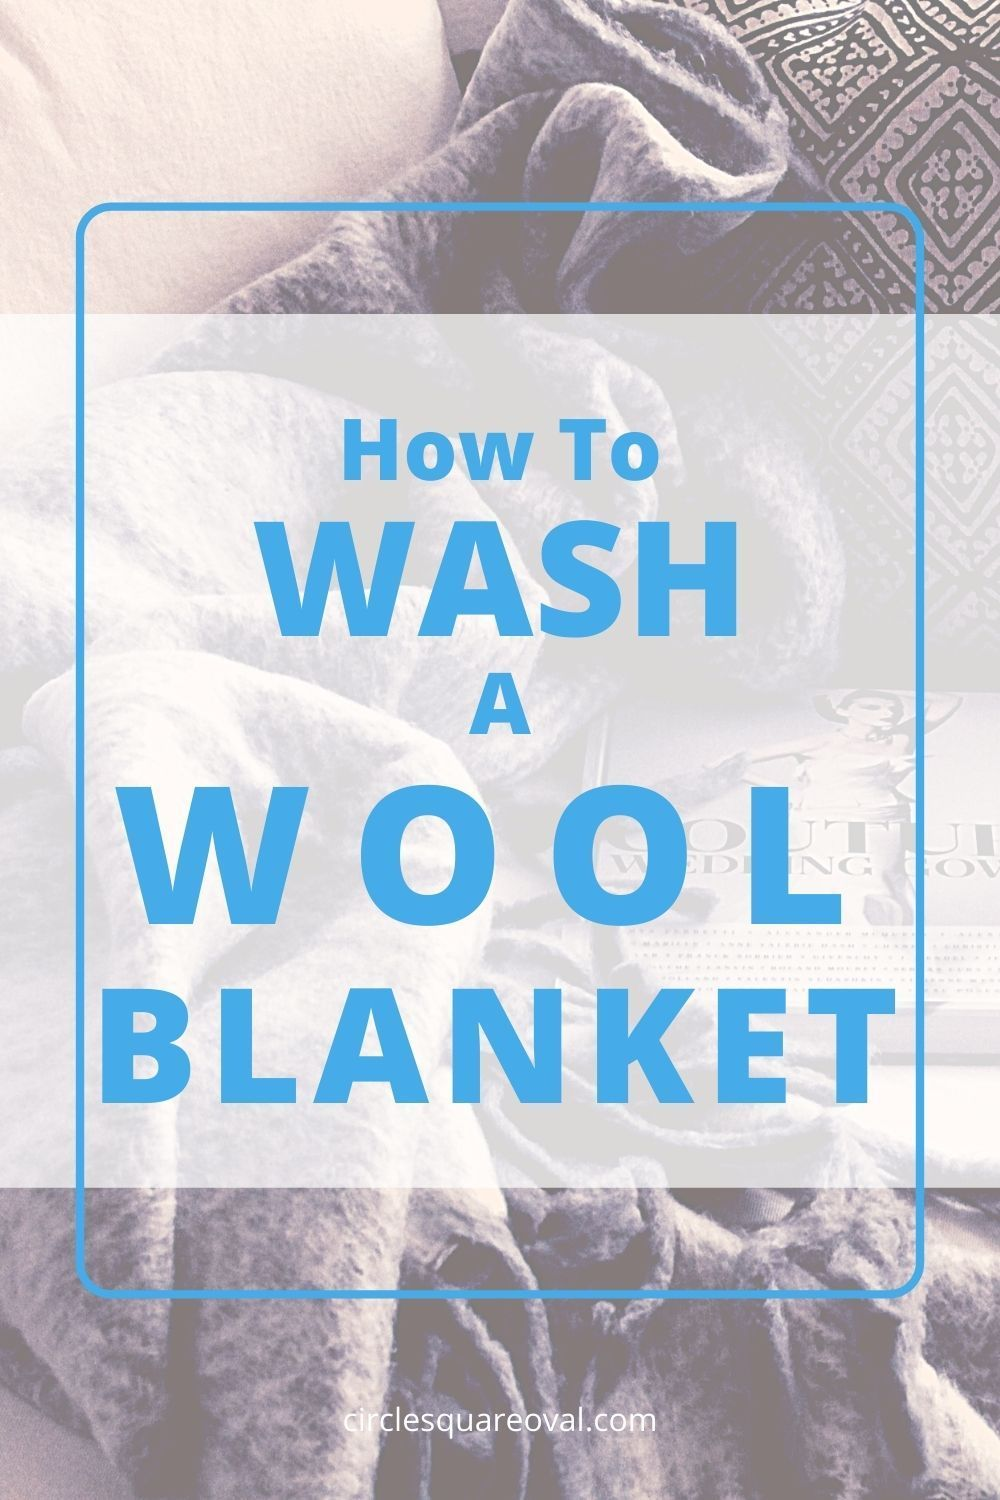 How To Care For A Wool Blanket Circlesquareoval In 2020 Blanket Care Kids Cleaning Wool Blanket